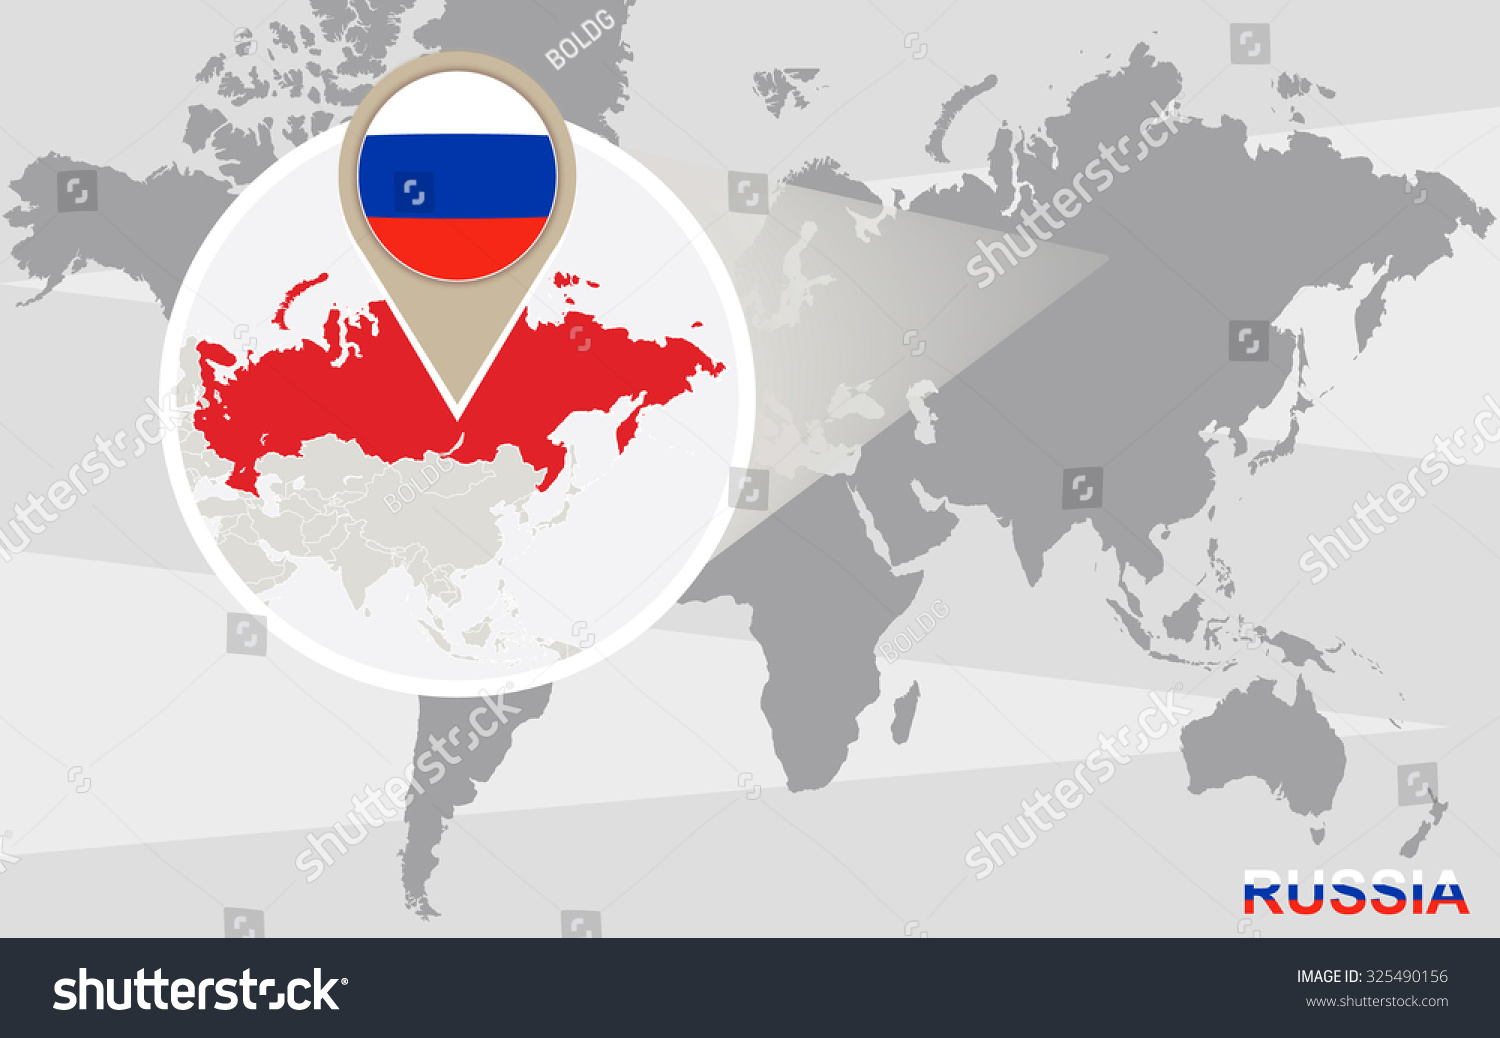 Russia World Map Map Of Namibia - Russia on a world map